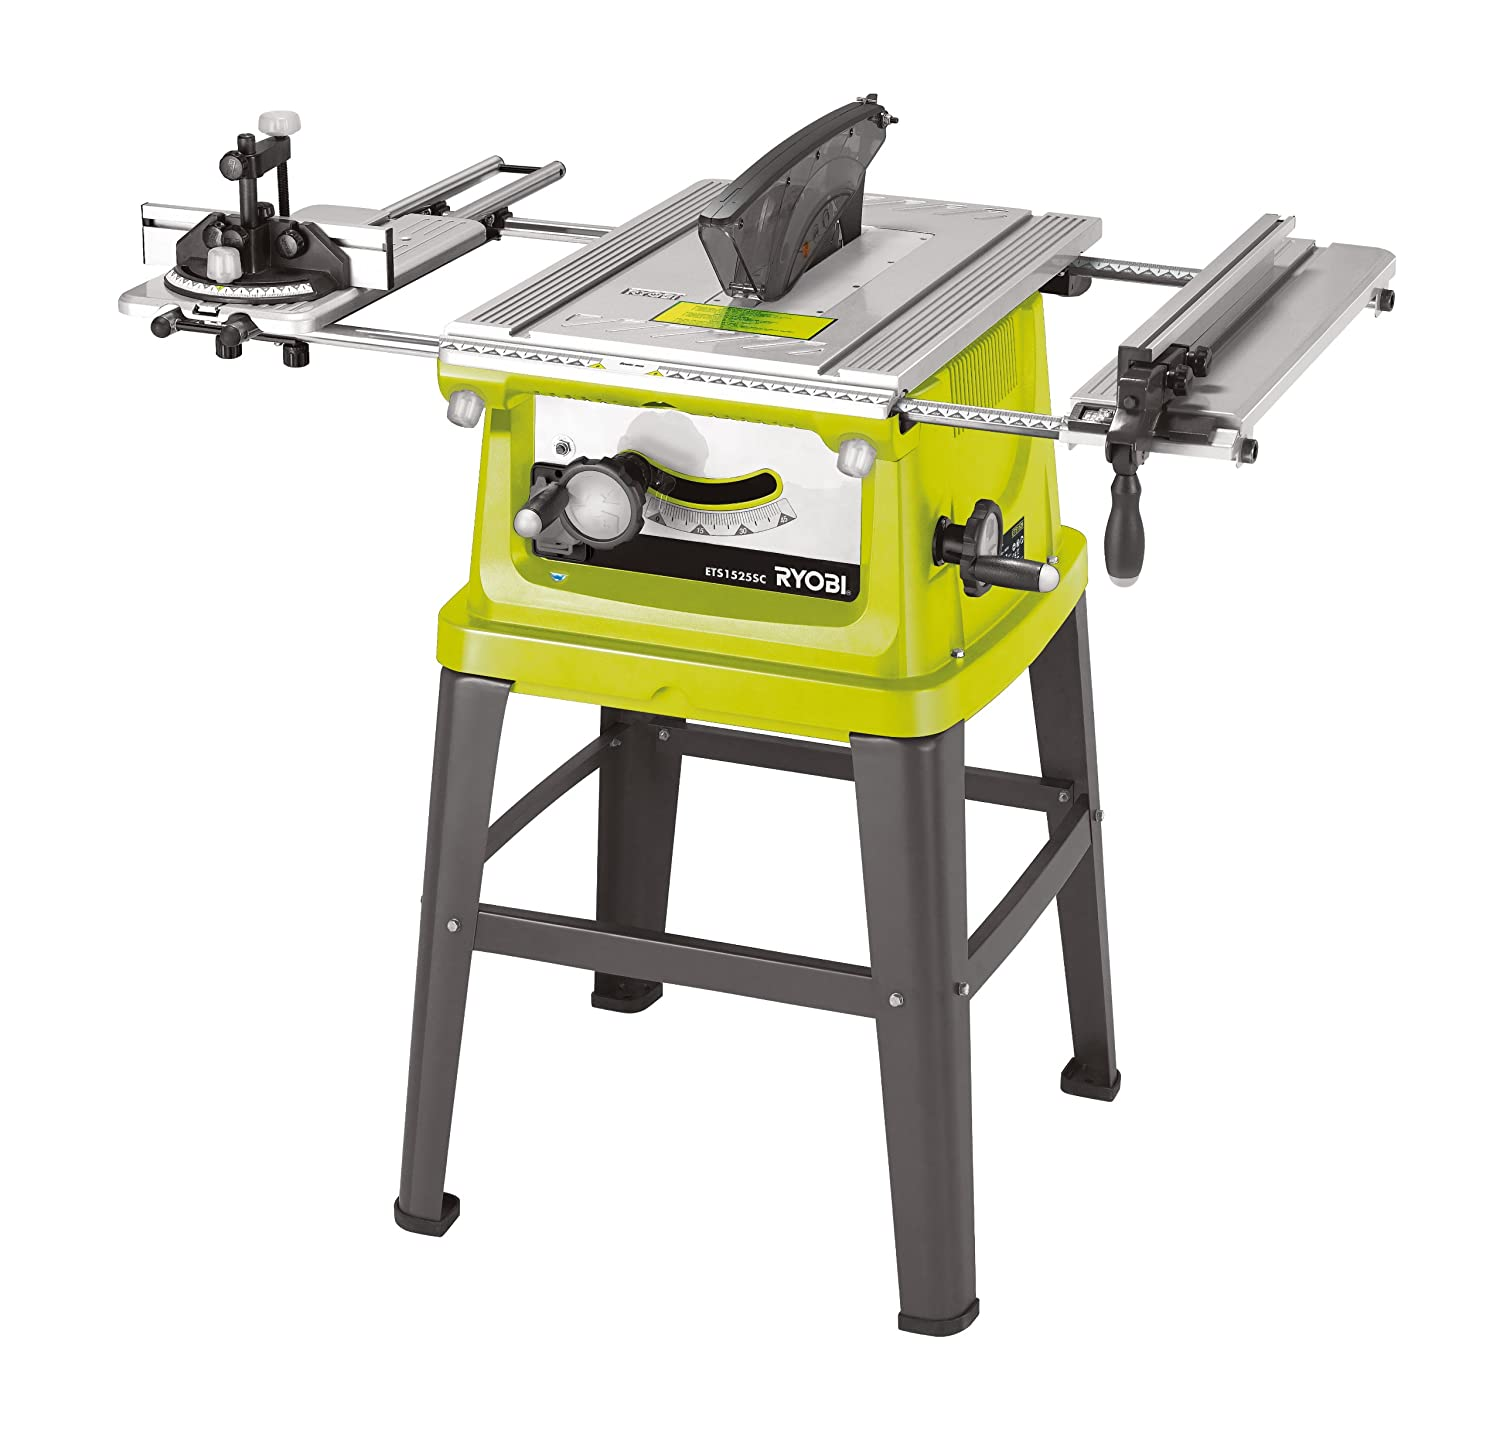 Ryobi 10 inch table saw with sliding carriage 254 mm old version ryobi 10 inch table saw with sliding carriage 254 mm old version amazon diy tools keyboard keysfo Images